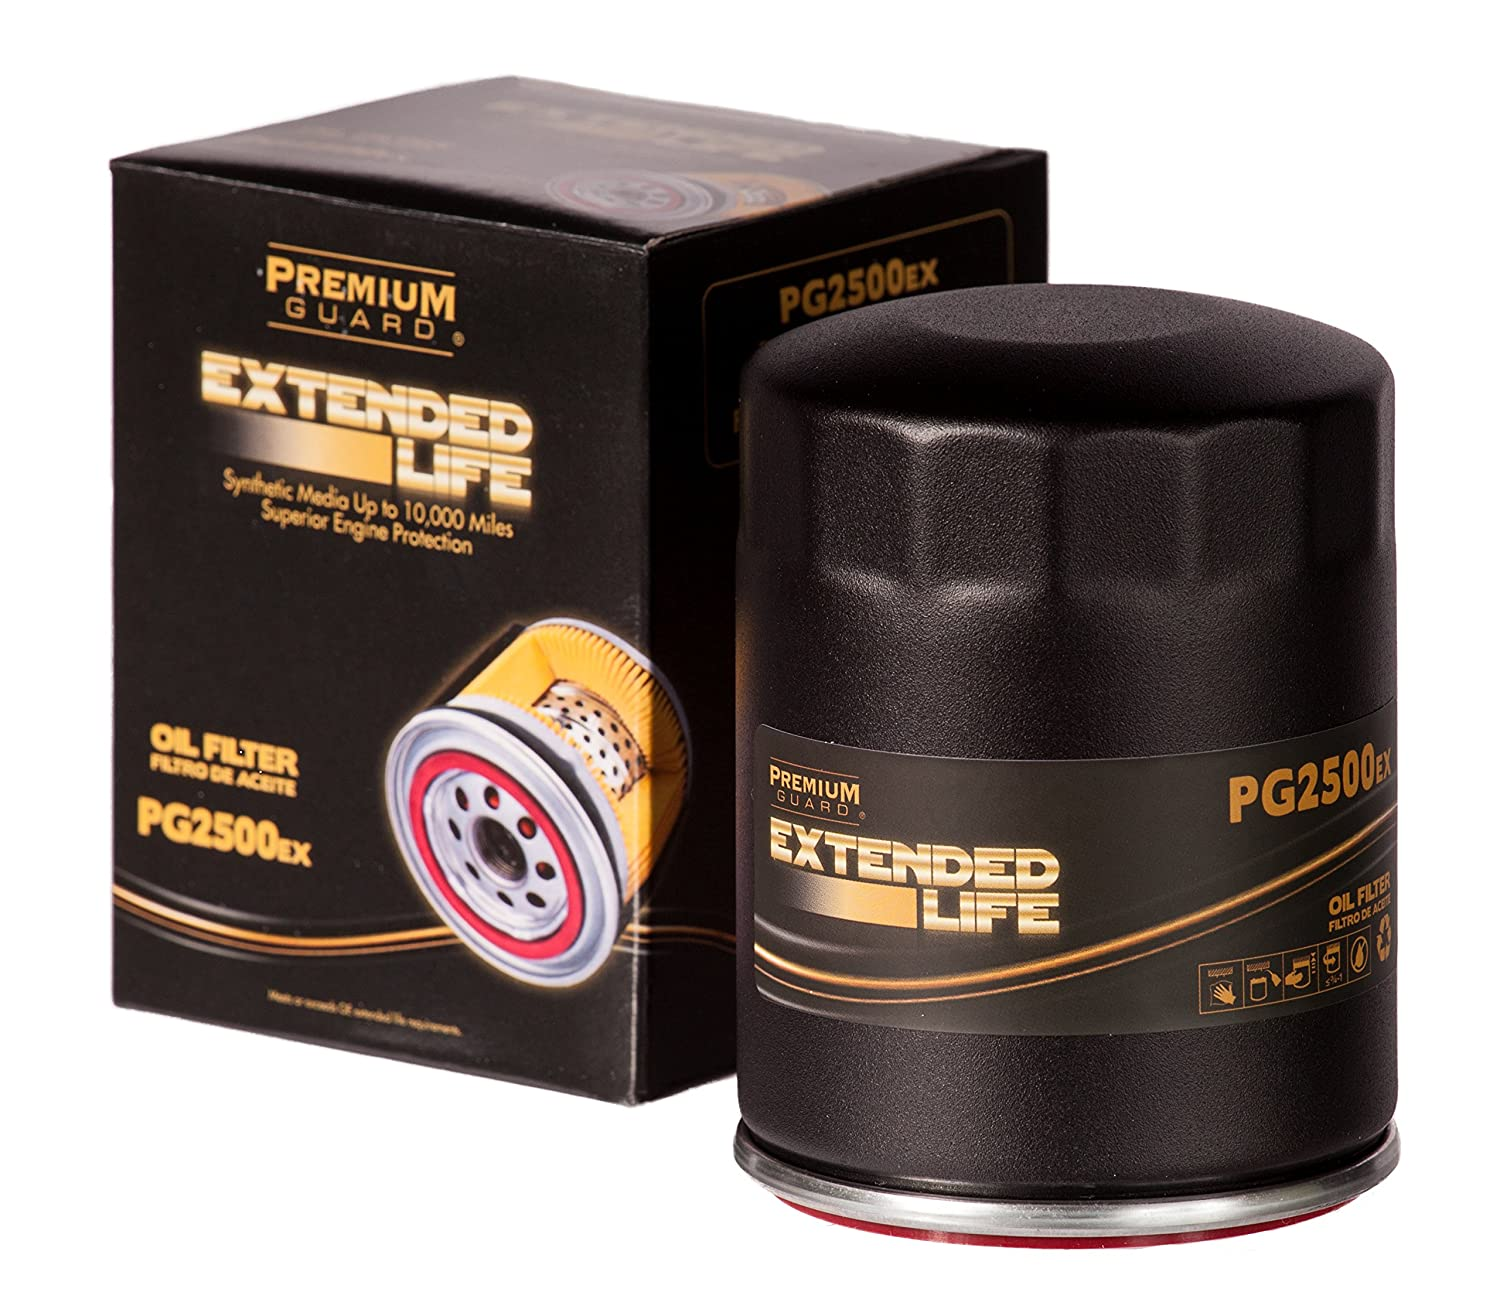 2011-18 LaCrosse 2015-18 Escalade 2011-16 SRX Premium Guard 2014-19 CTS 2016-18 CT6 PG PG2500EX EXtended Performance Oil Filter|Fits 2011-18 Buick Enclave 2016-18 Cadillac ATS 2015-18 Escalade ESV